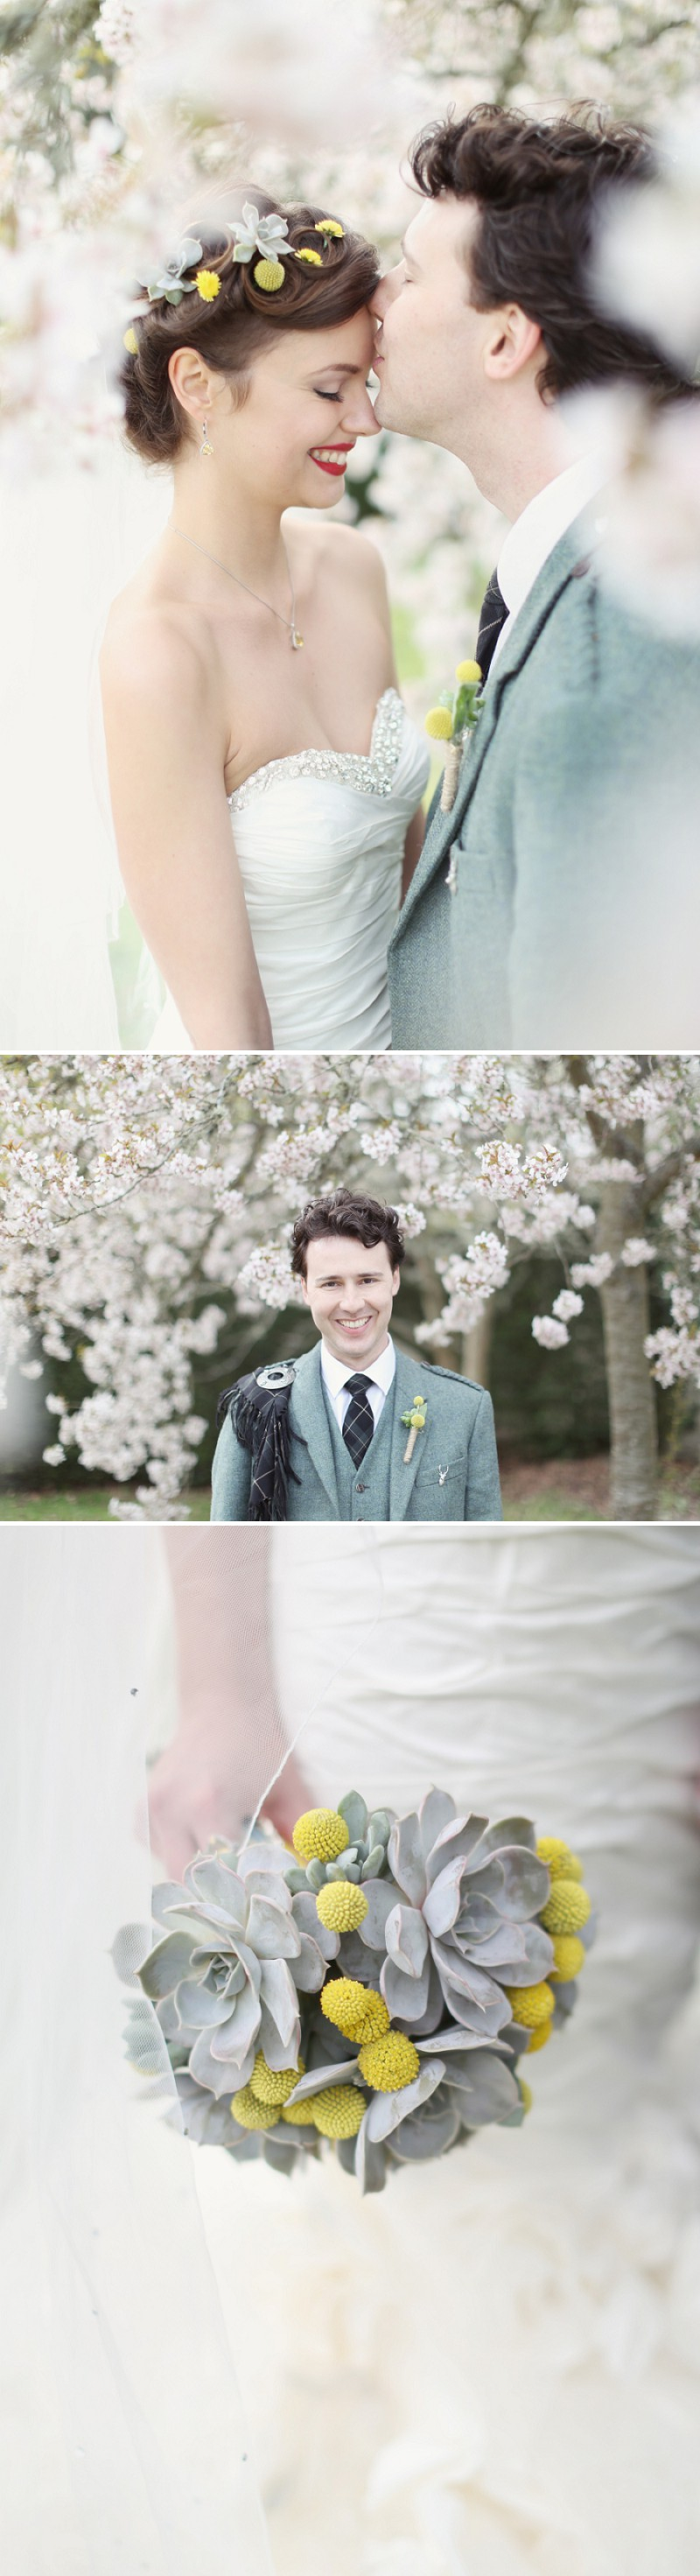 A Super Glamorous Spring Scottish Wedding At Fyvie Castle With An Ian Stewart Ruffled Fishtail Dress and A Yellow Billy Ball Bouquet With Photography By Craig and Eva Sanders._0011